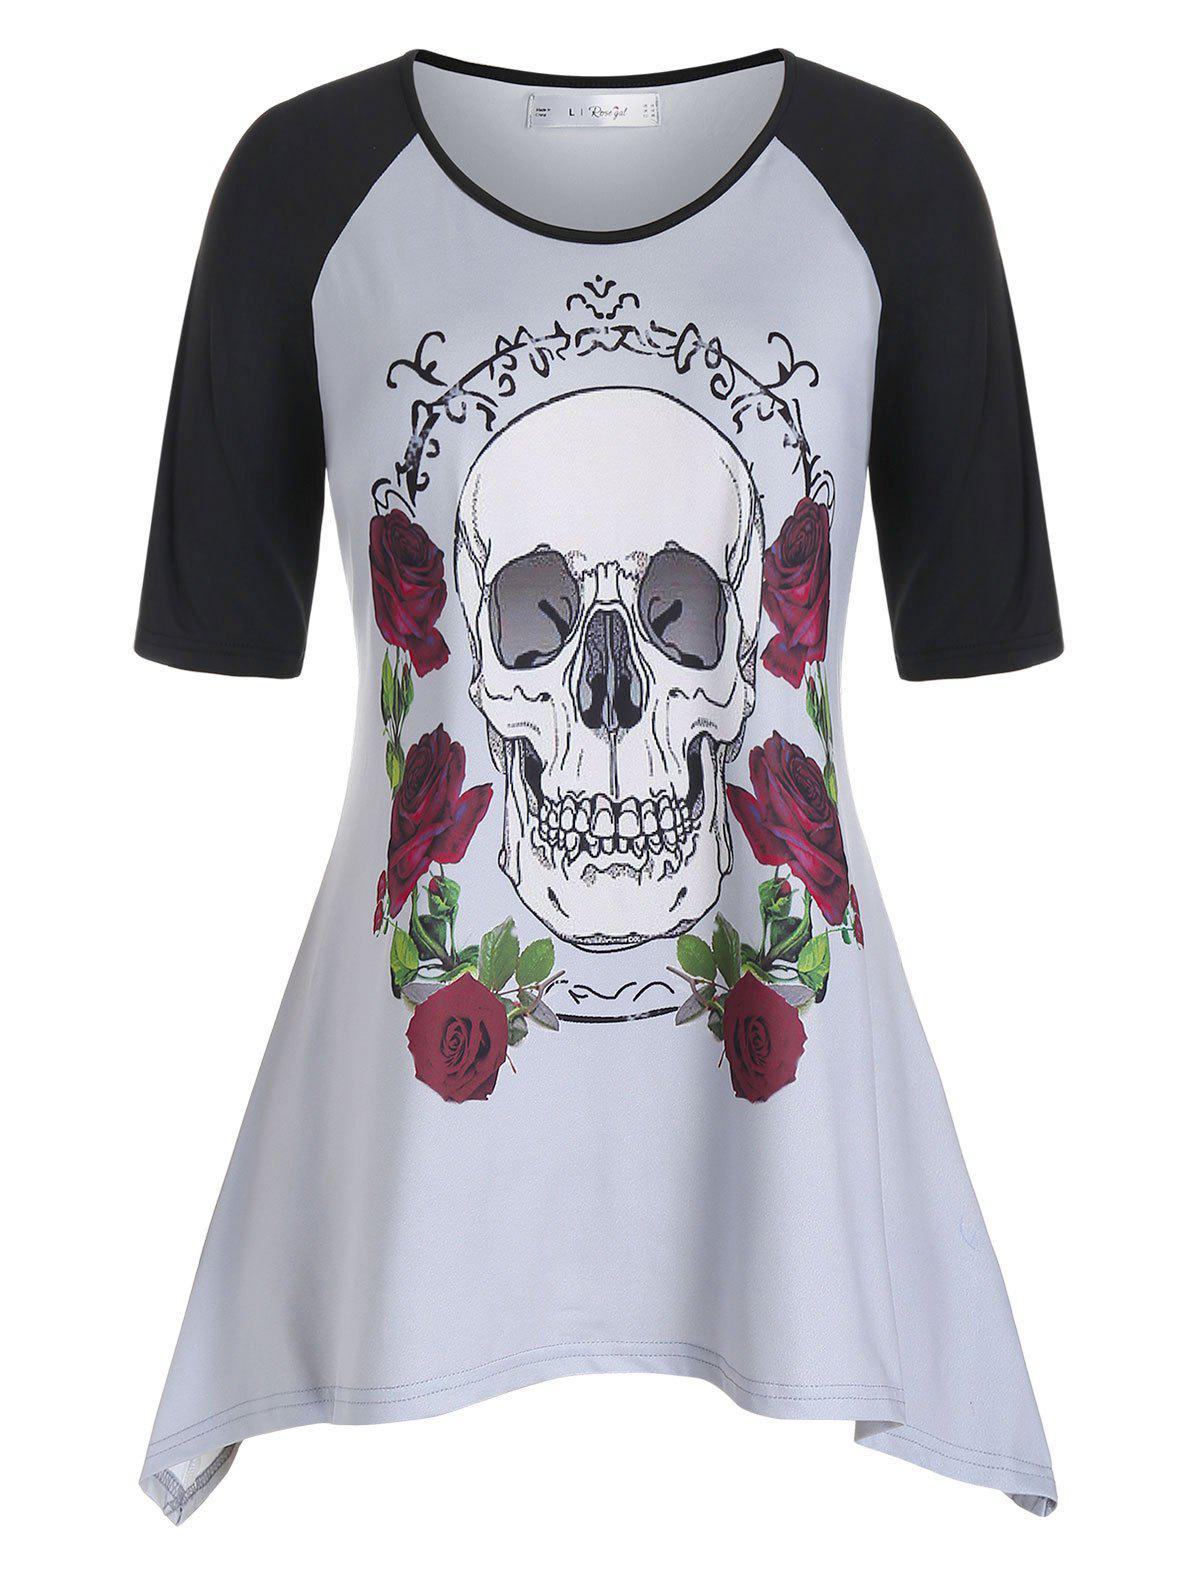 Plus Size Raglan Sleeve Rose Skull Print T Shirt - GRAY CLOUD 5X